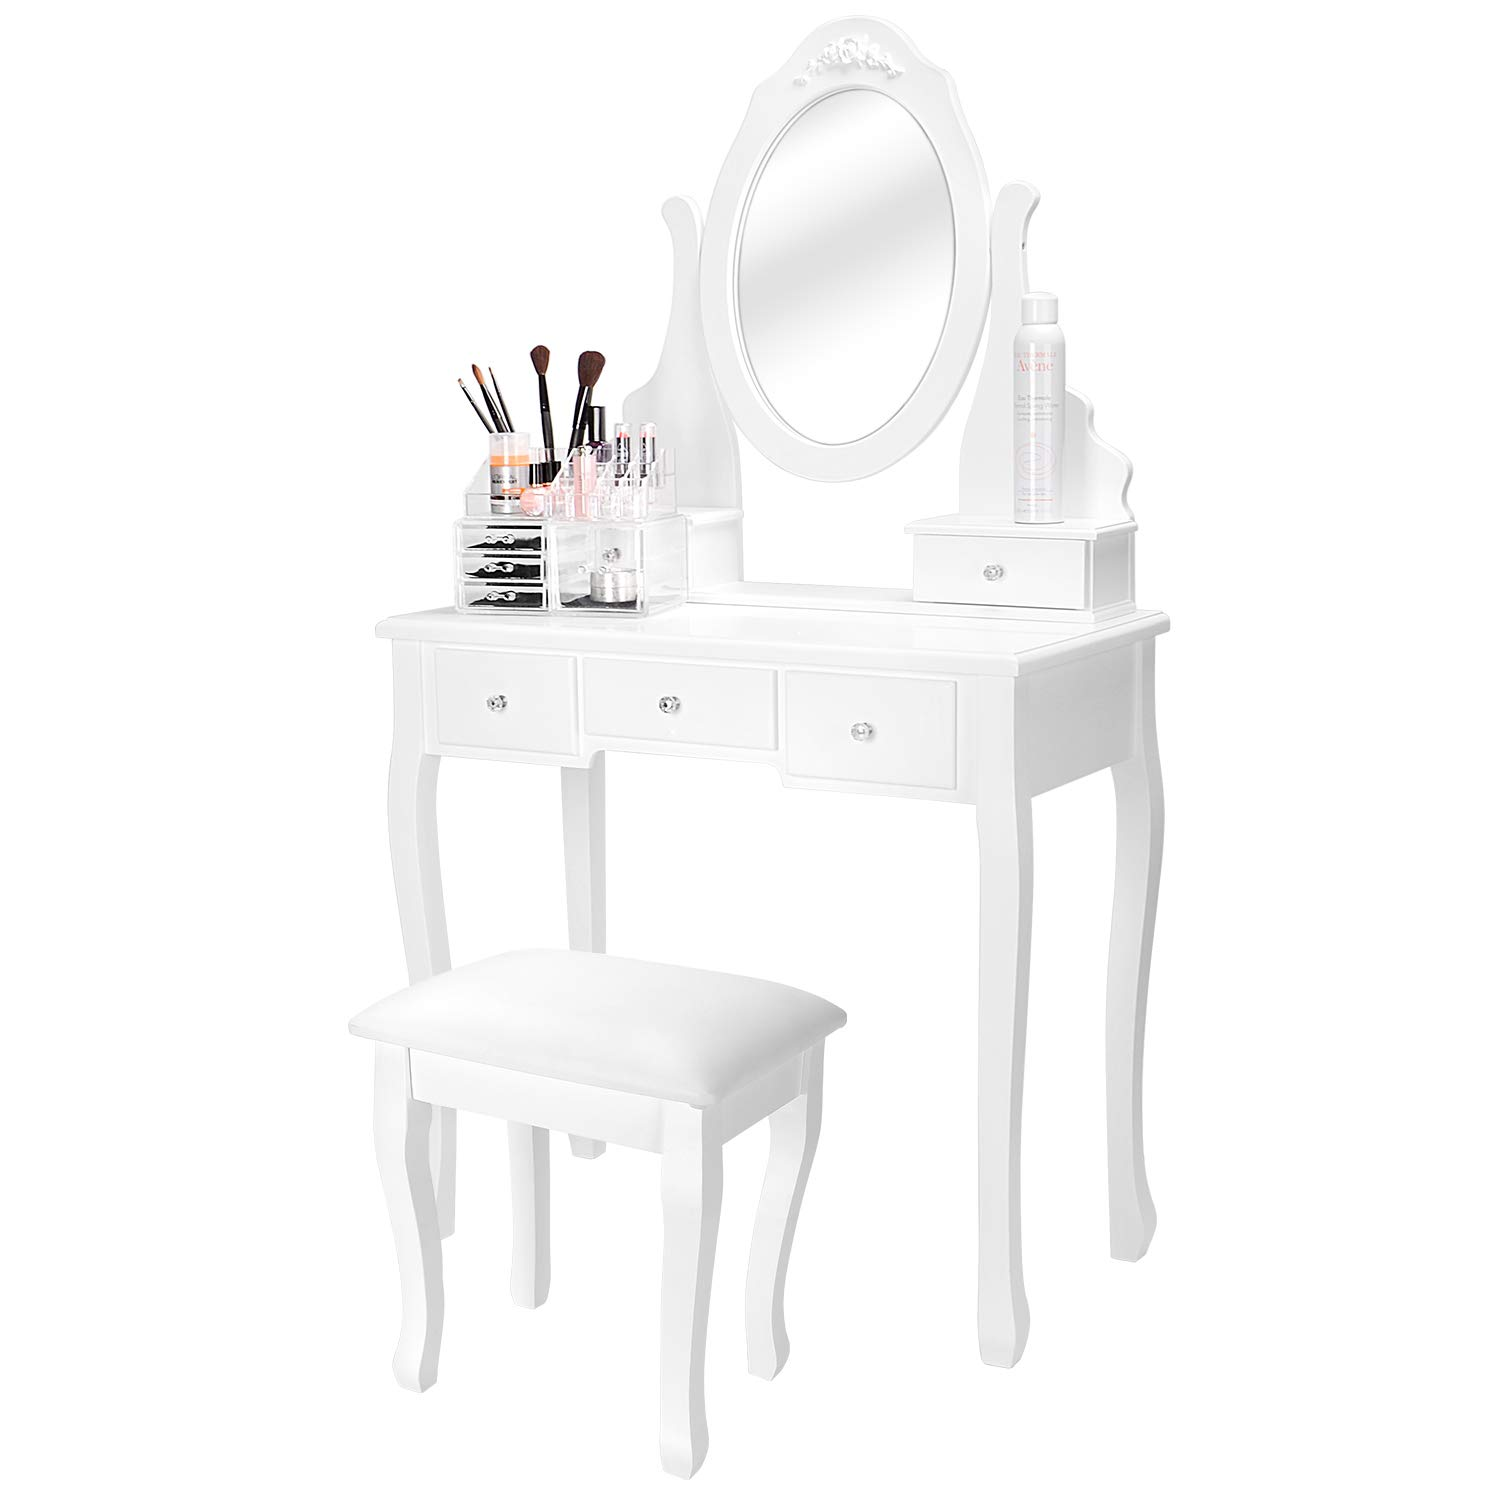 SortWise™ Vanity Table Set with Oval Mirror and Cushioned Stool, Multifunctional Makeup Dressing Table Writing Desk with 5 Drawers, White